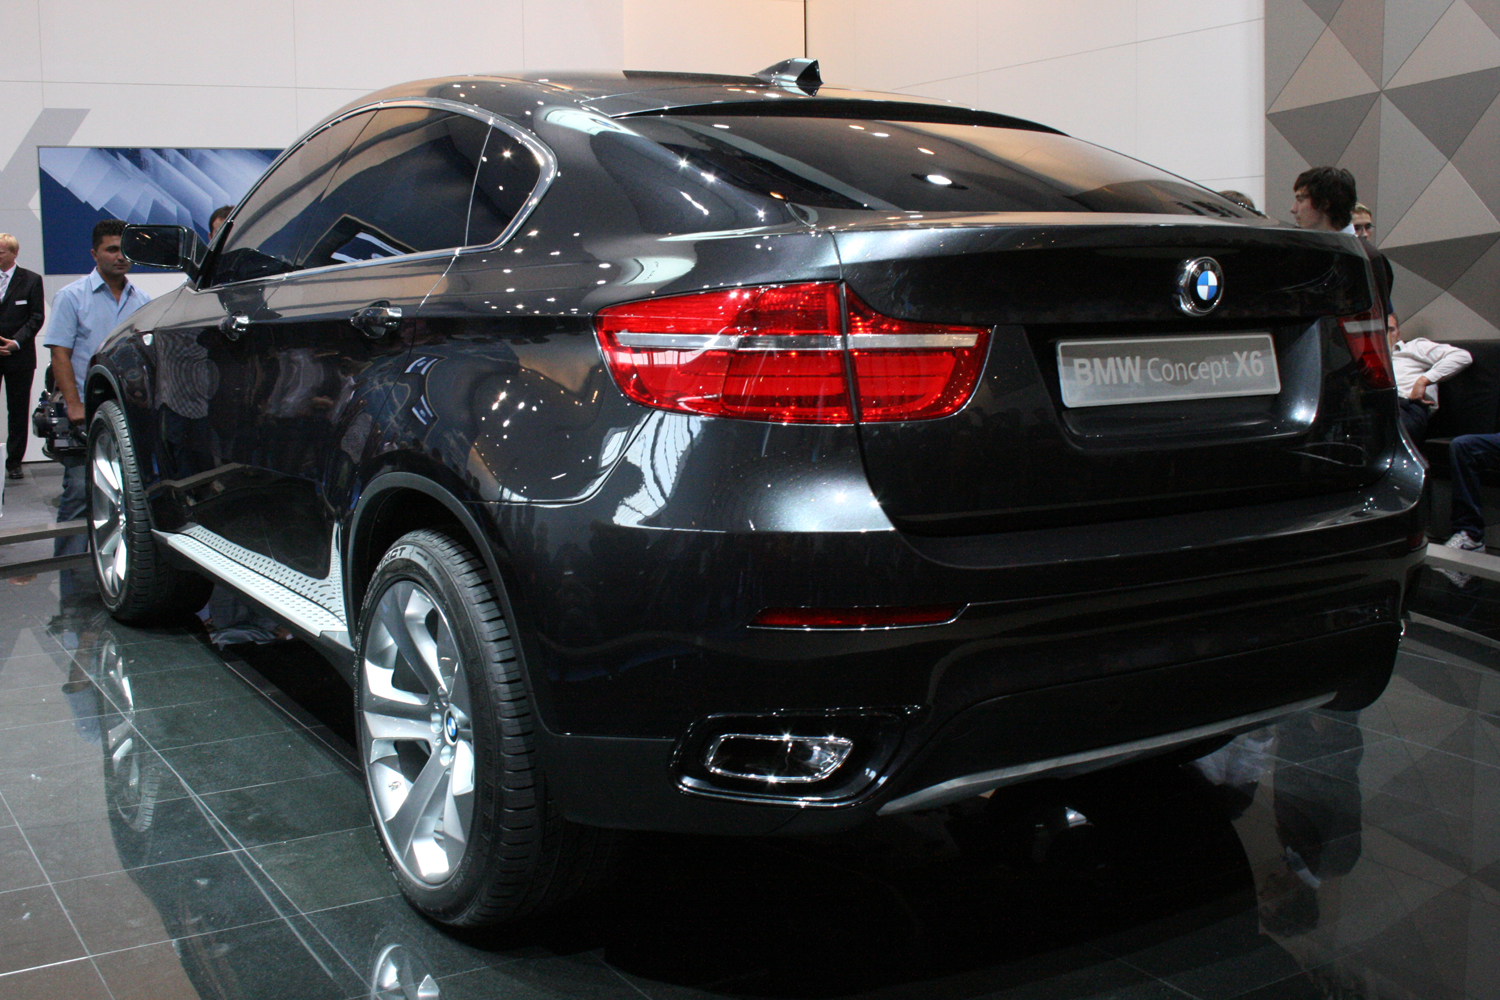 File:BMW X6 Heck.jpg - Wikimedia Commons